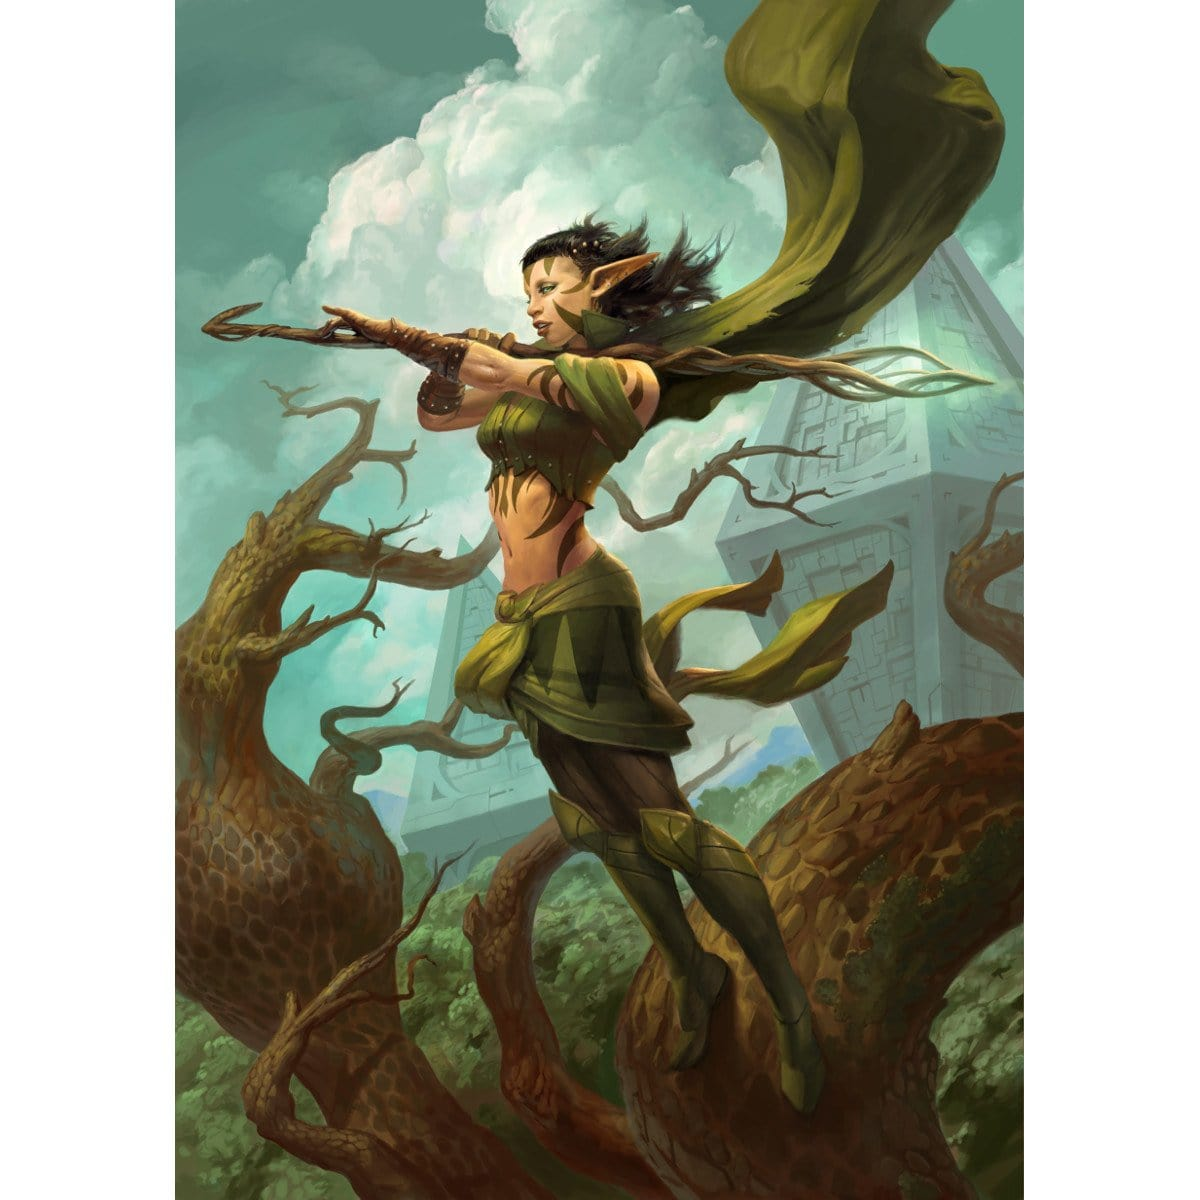 Nissa, Worldwaker Print - Print - Original Magic Art - Accessories for Magic the Gathering and other card games